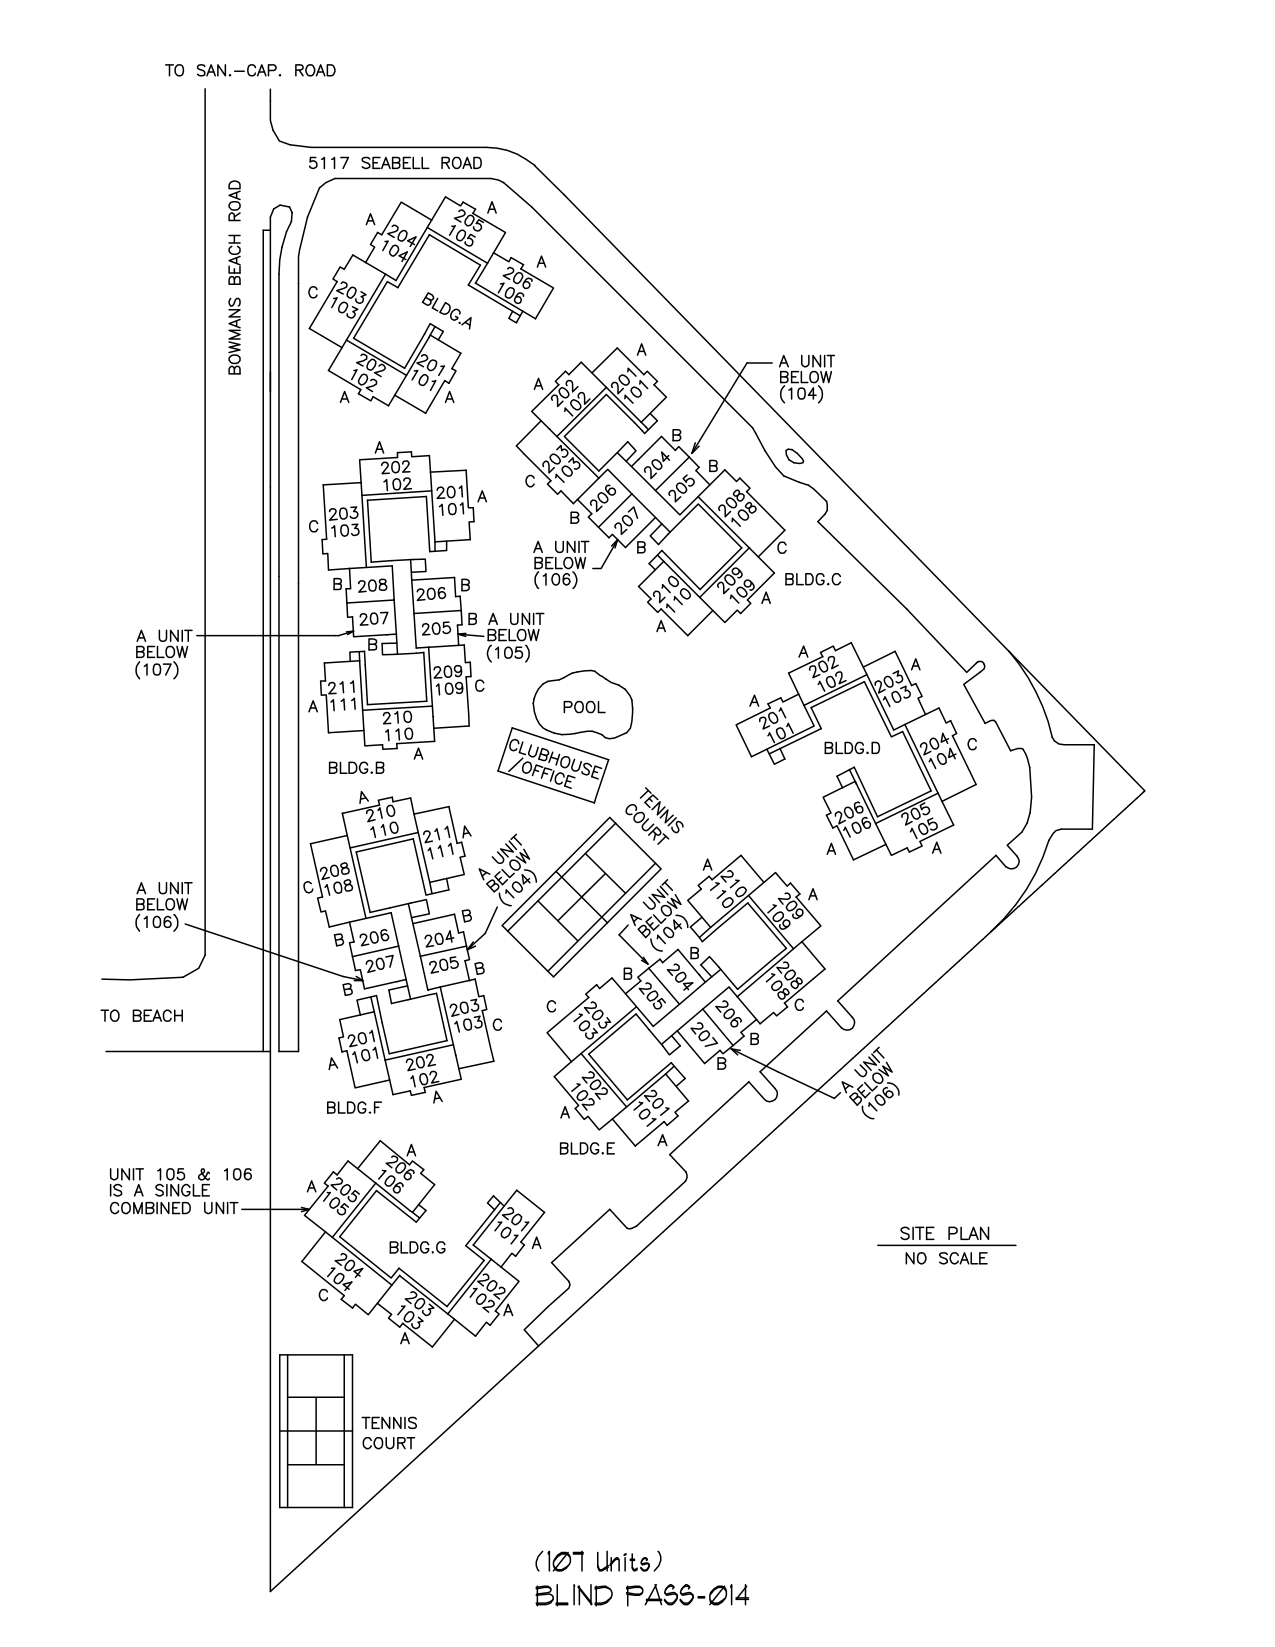 Blind Pass Site Plan